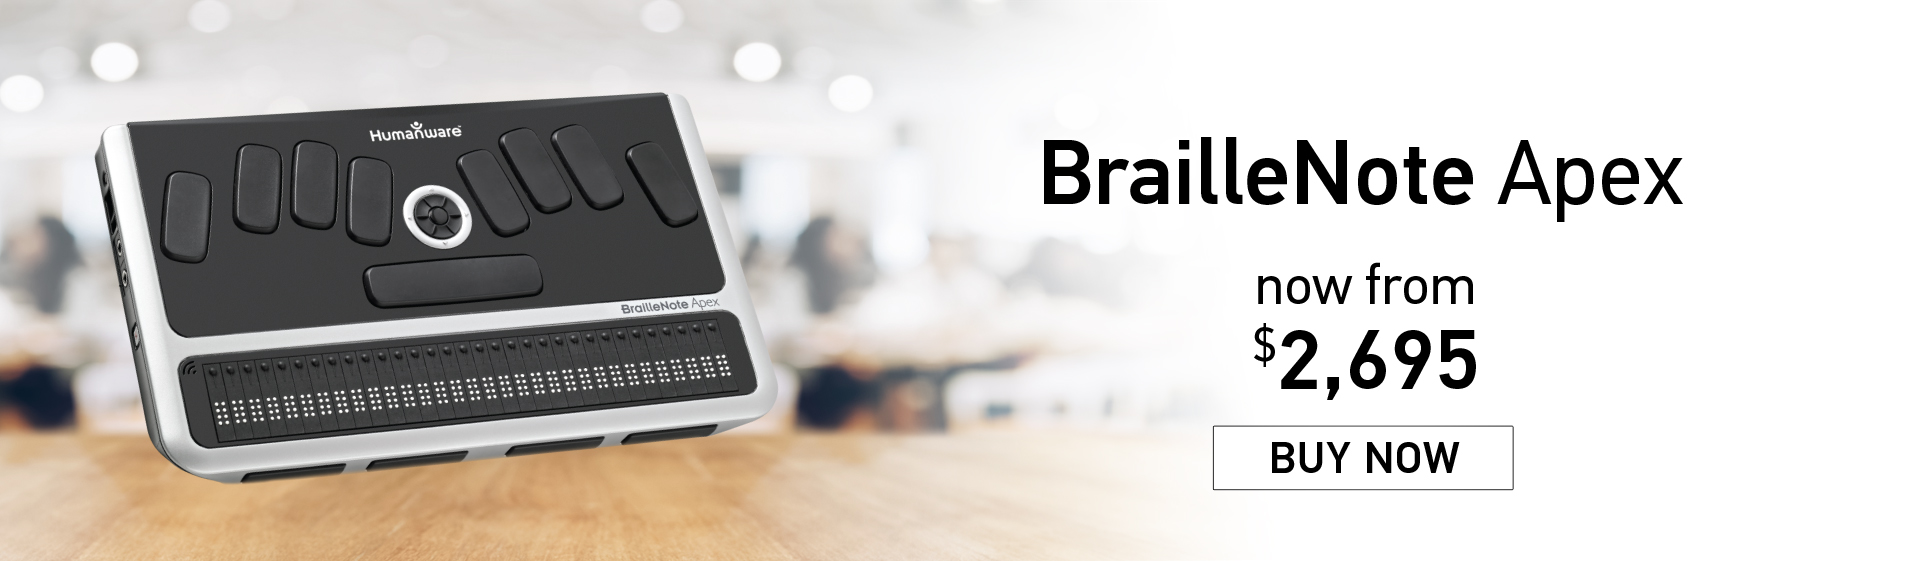 BrailleNote Apex - now from $2,695